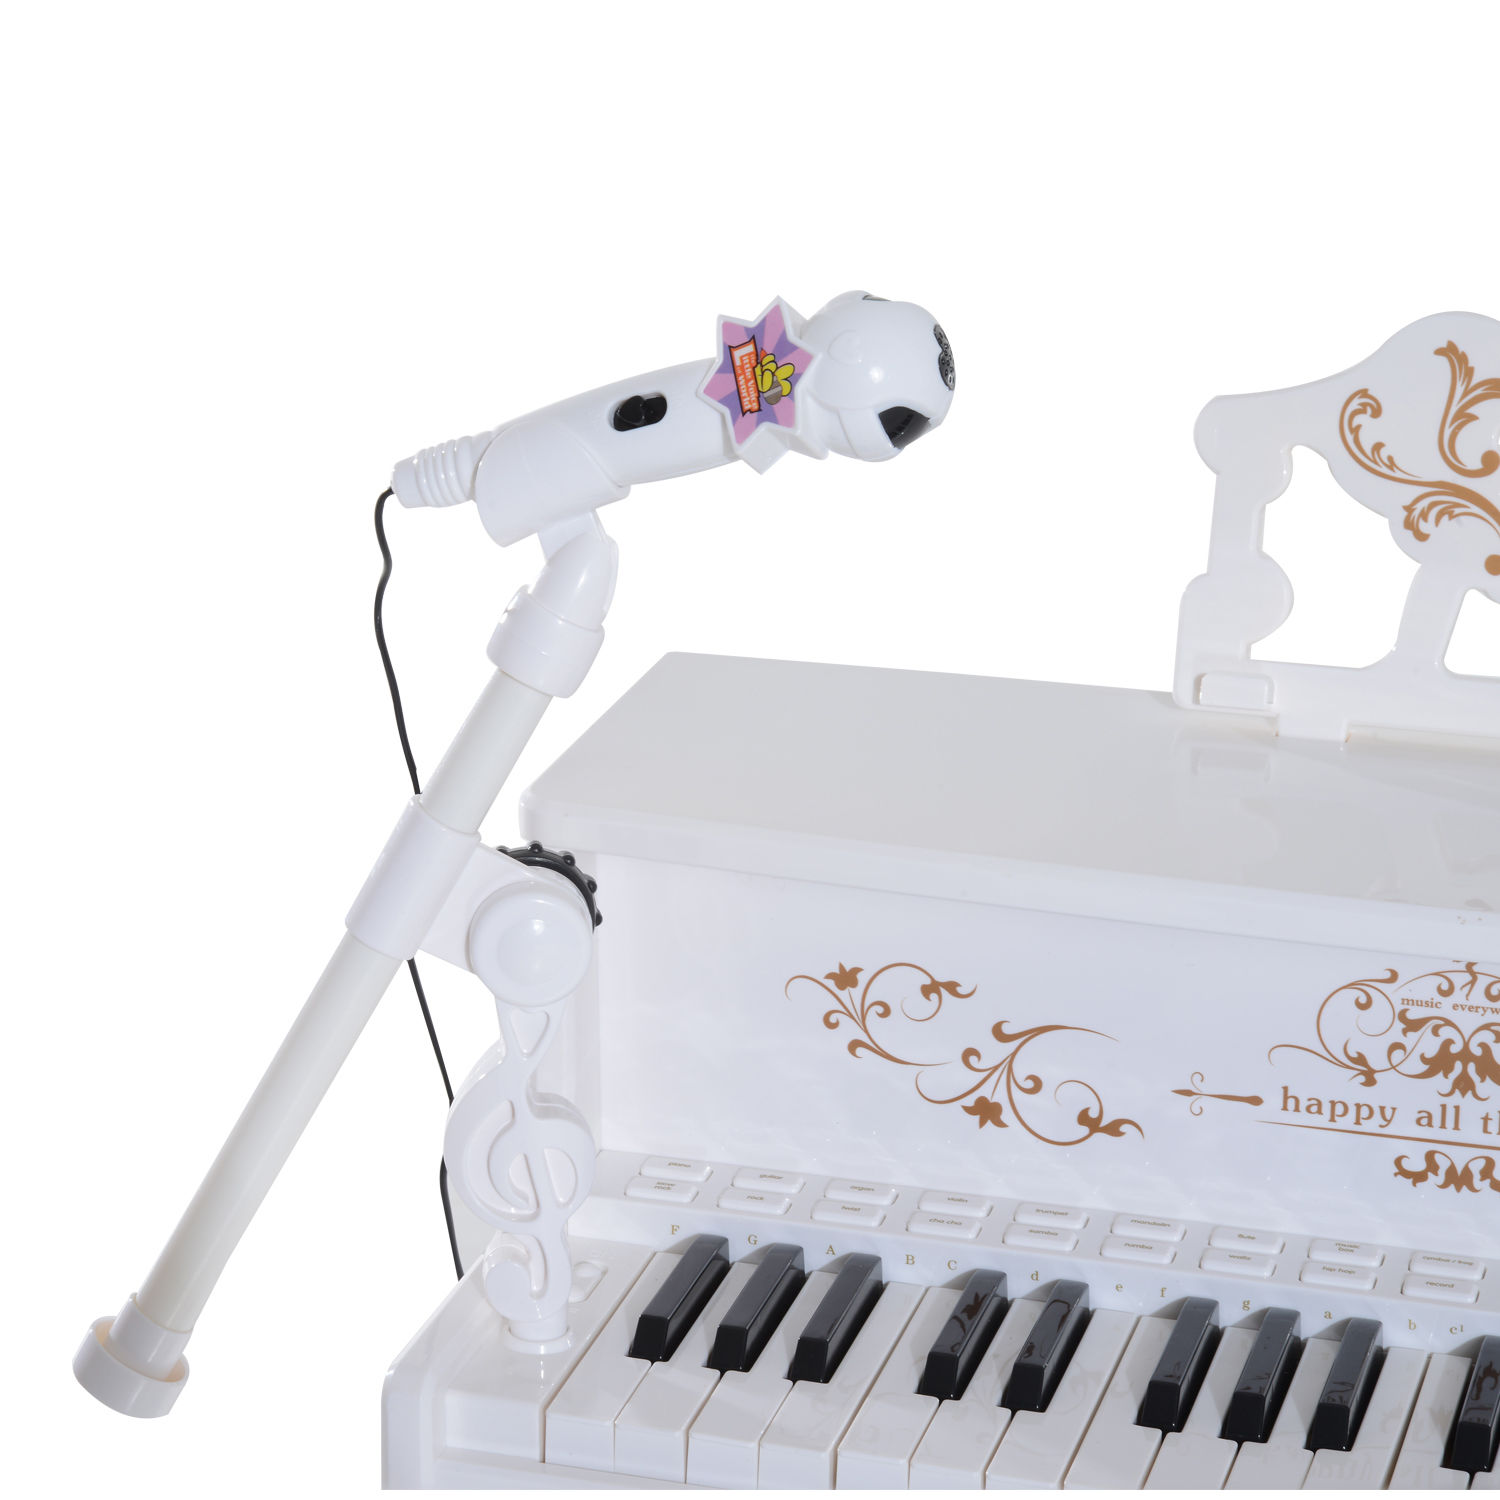 37-32-Key-Kids-Electronic-Keyboard-Mini-Grand-Piano-Stool-Microphone-Musical-Toy thumbnail 54